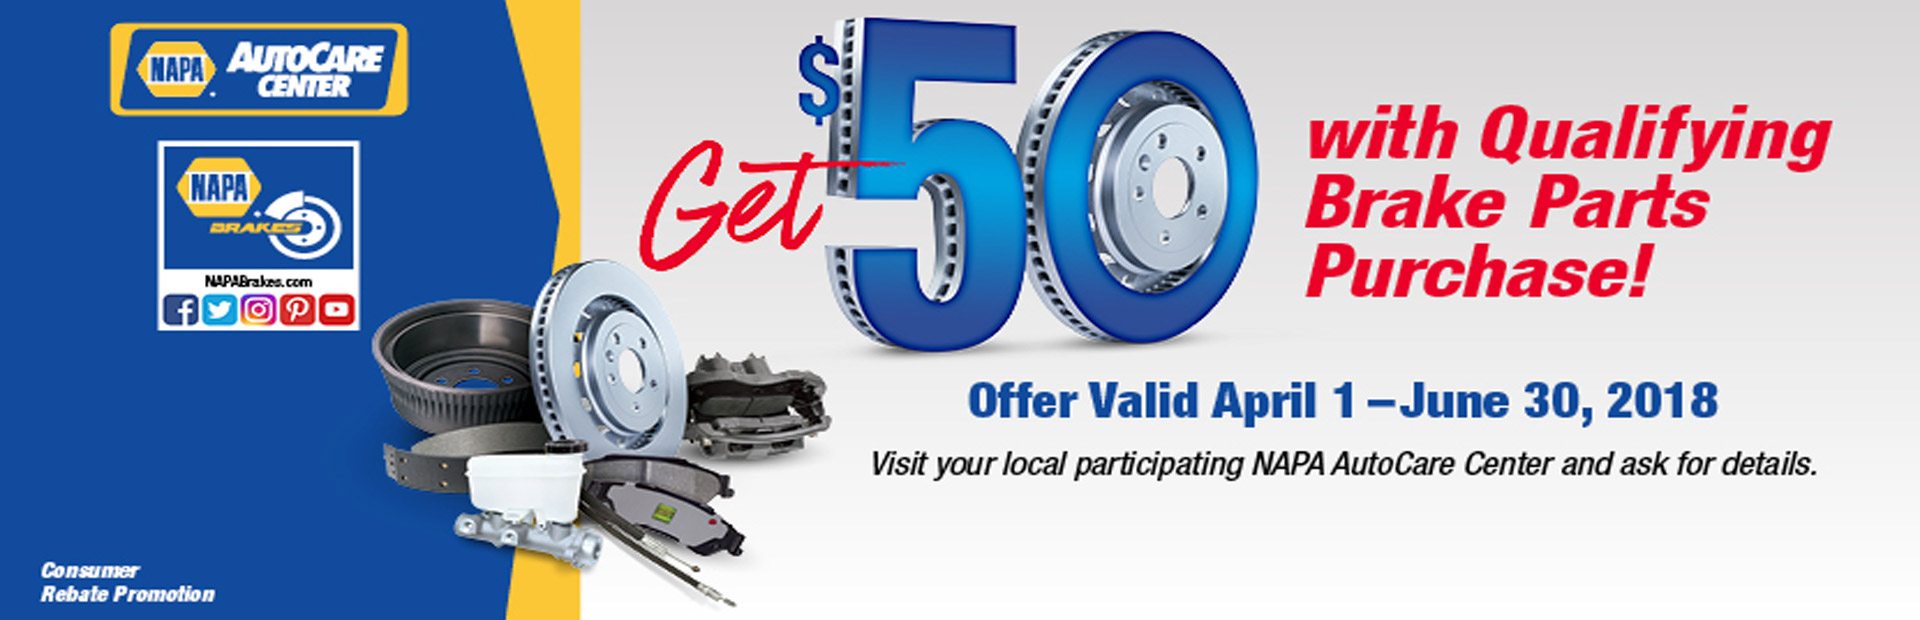 NAPA - Get $50 with Qualifying Brake Parts